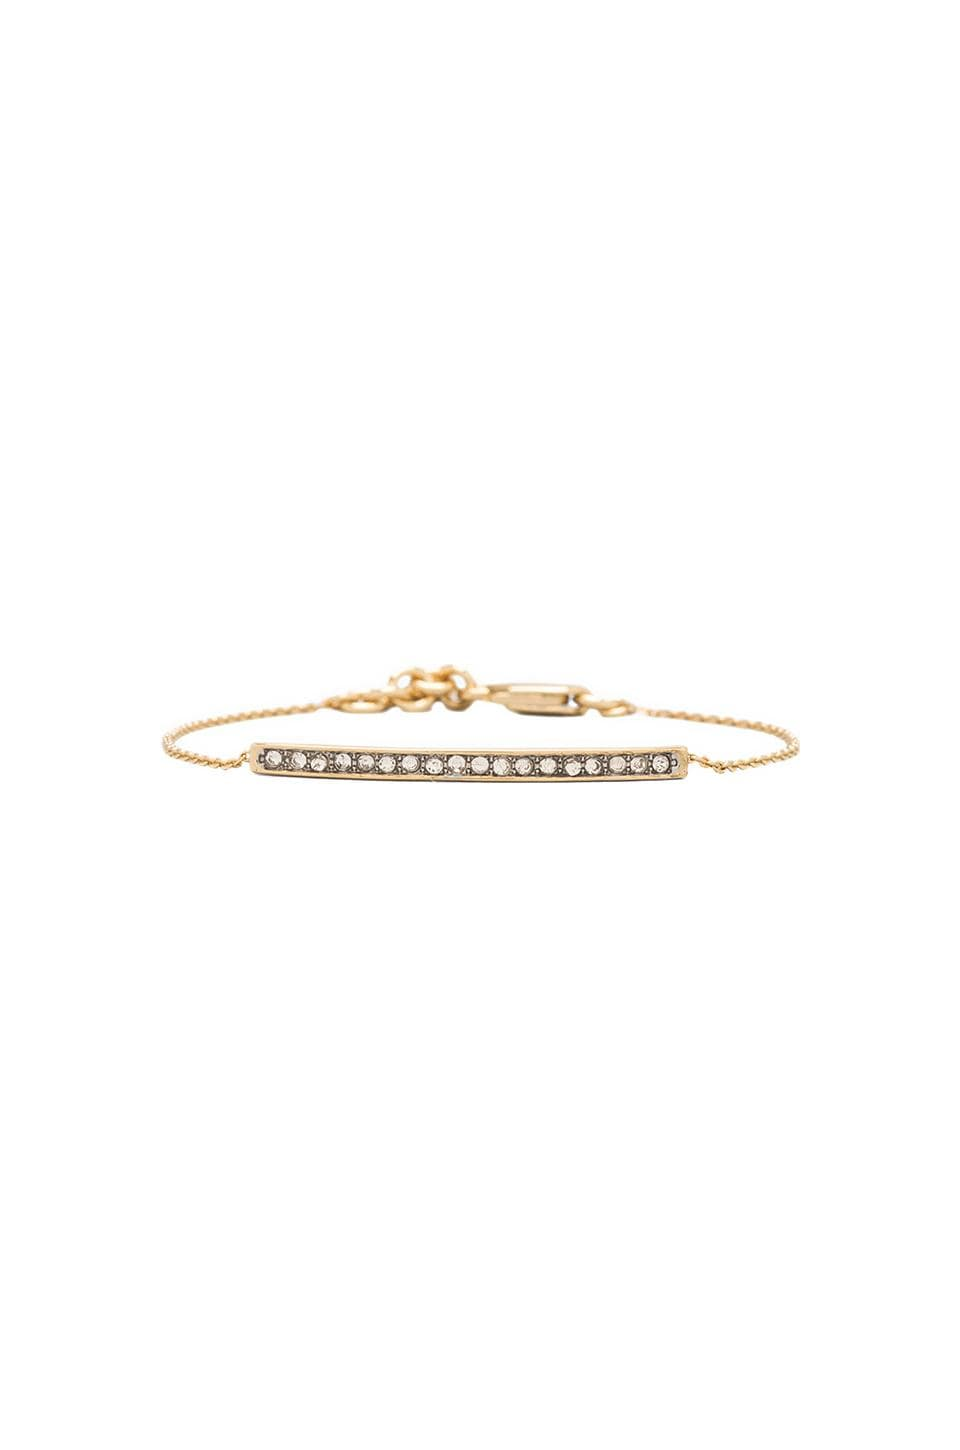 Juicy Couture Pave Bar Bracelet in Gold